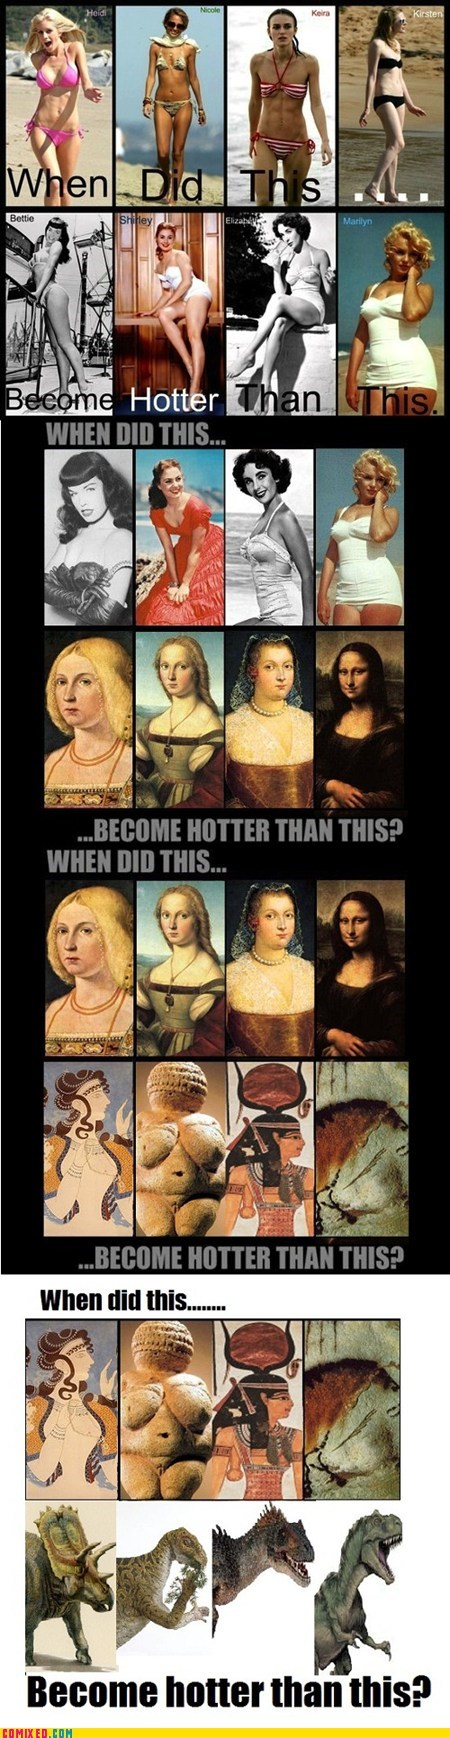 best of week girls meme prehistoric the internets when did this become hotter than this women - 5773941248